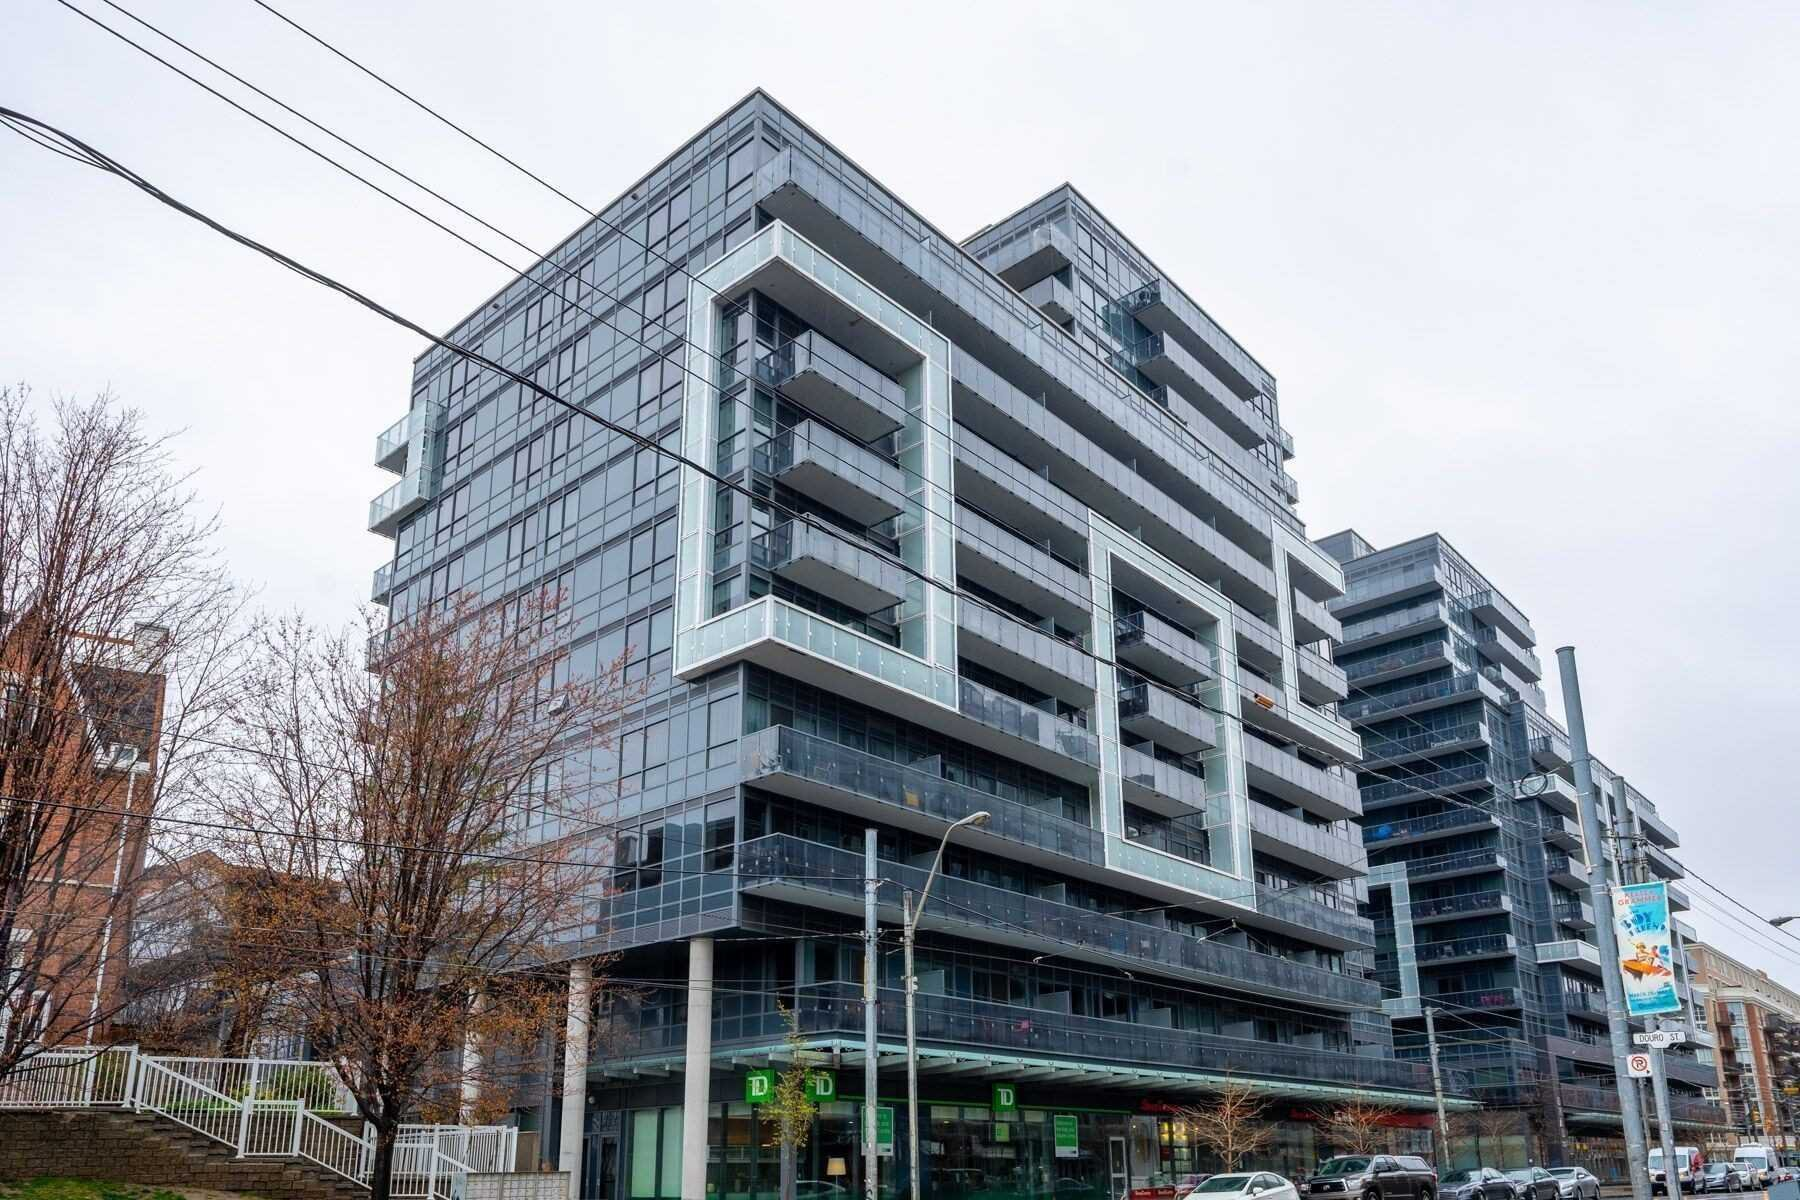 Main Photo: 744 1030 W King Street in Toronto: Niagara Condo for sale (Toronto C01)  : MLS®# C4758615